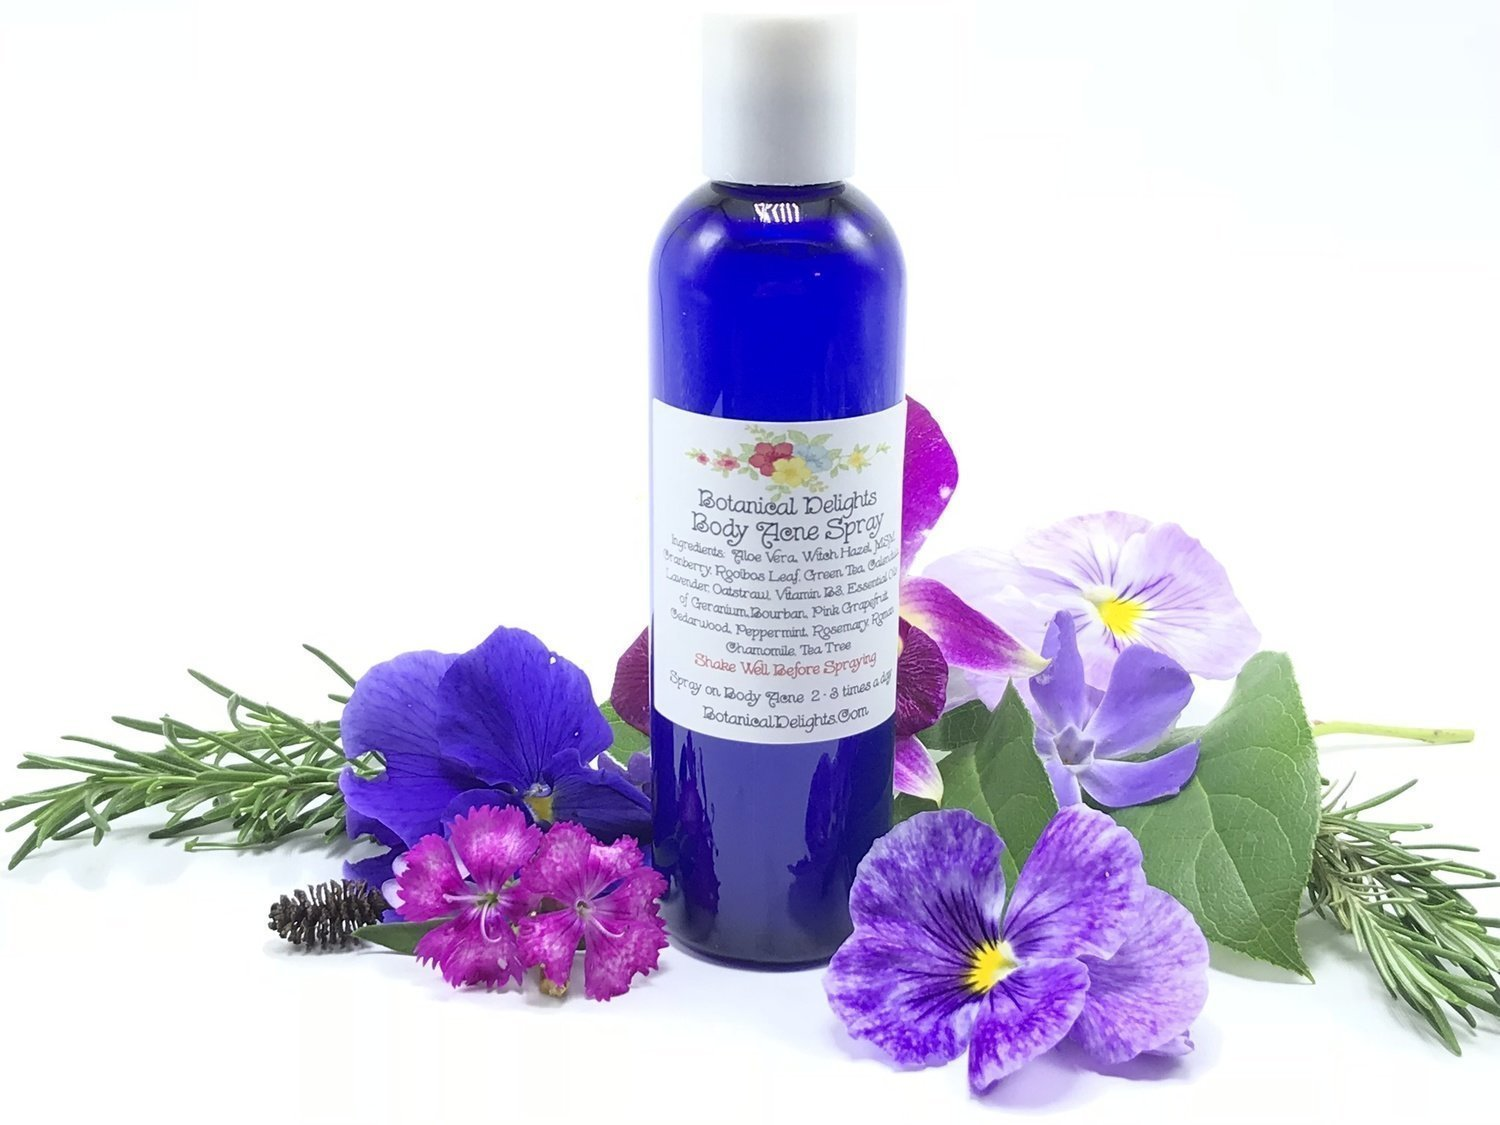 BODY ACNE SPRAY - MSM, Anti Bacterial Essential Oils and Botanical Extracts  for reducing acne, and fading acne scars